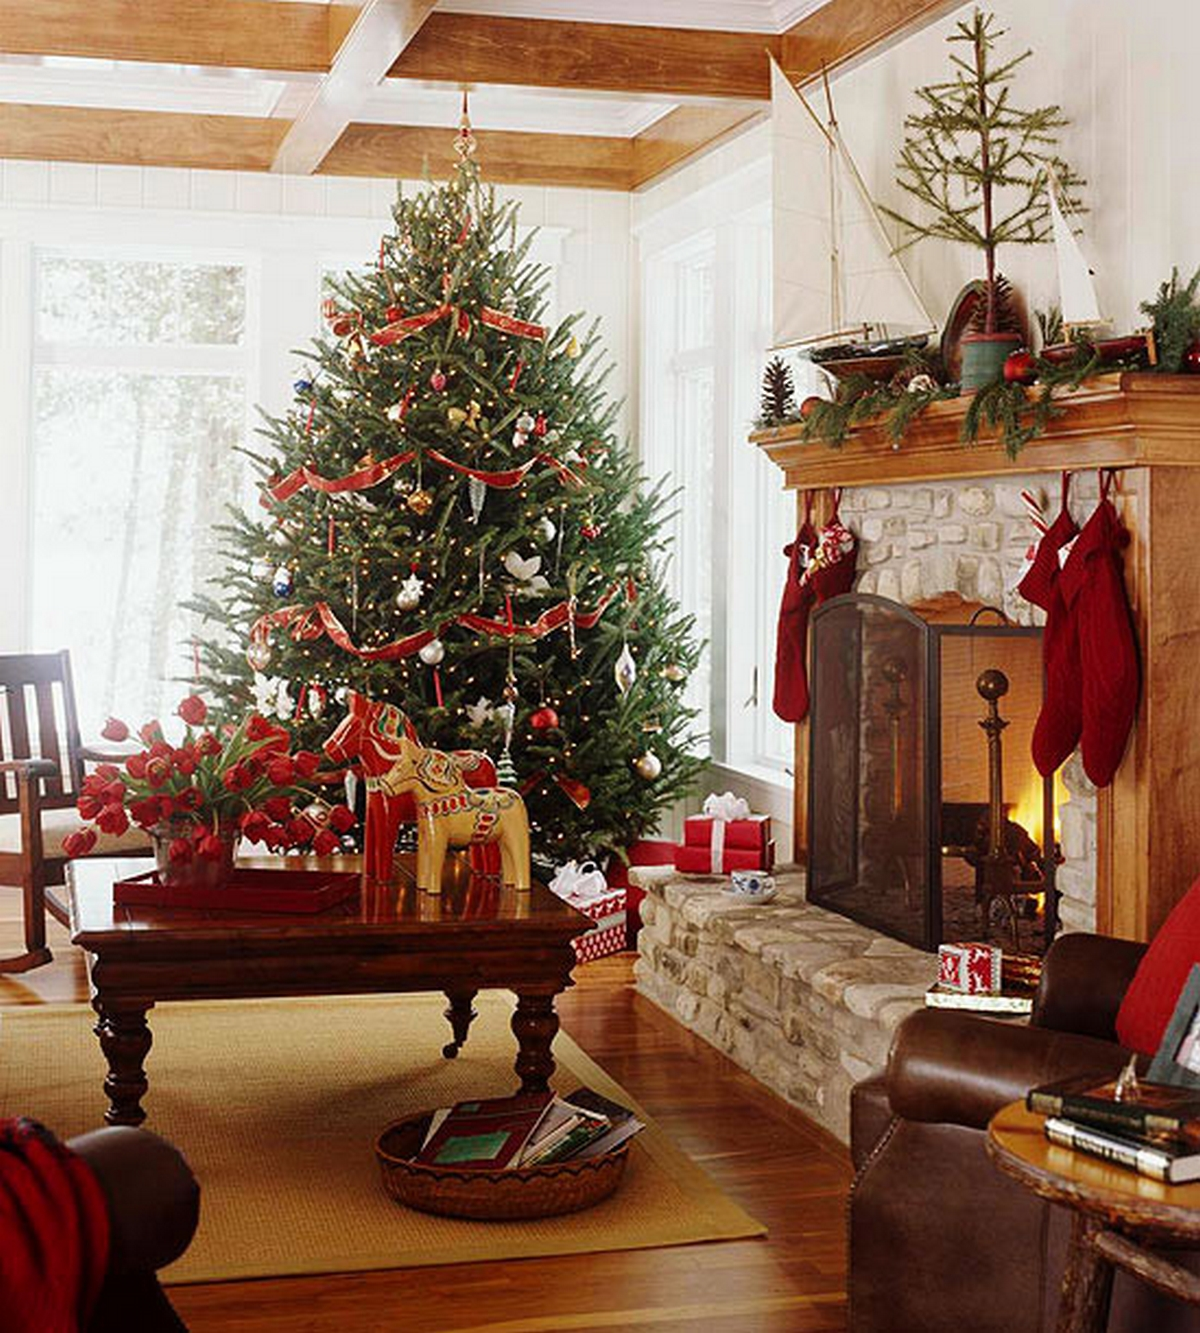 Gorgeous Living Rooms to Get Inspired for your Christmas Decor christmas decor Gorgeous Living Rooms to Get Inspired for your Christmas Decor Gorgeous Living Rooms to Get Inspired for your Christmas Decor6